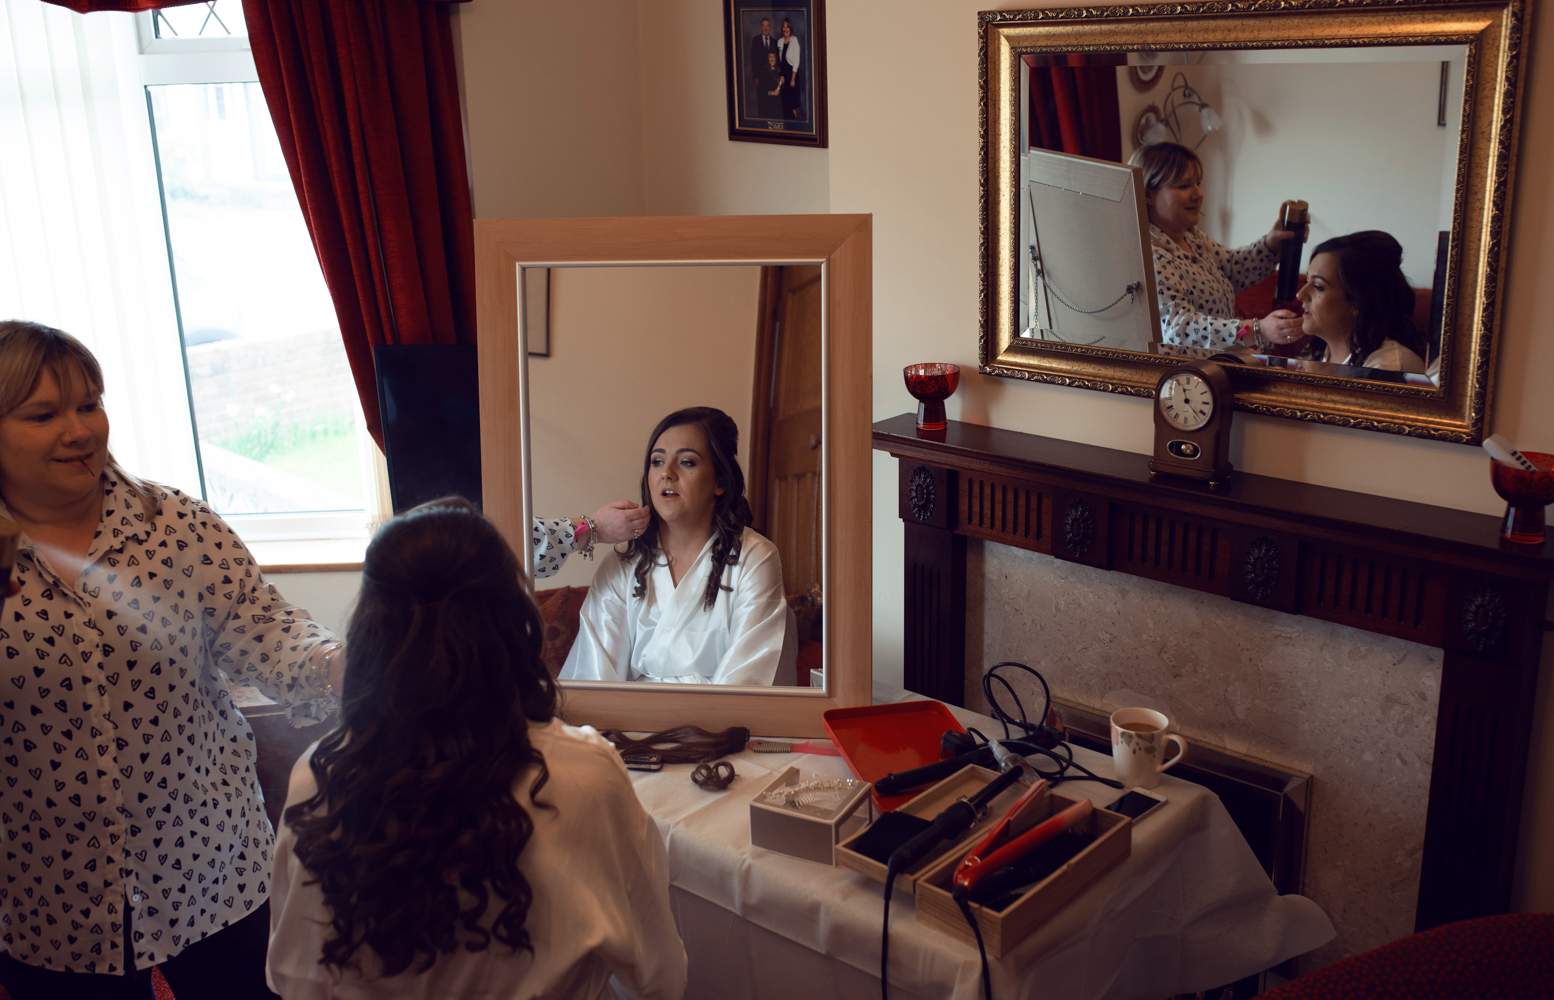 The bride during morning bridal preparations having her makeup applied